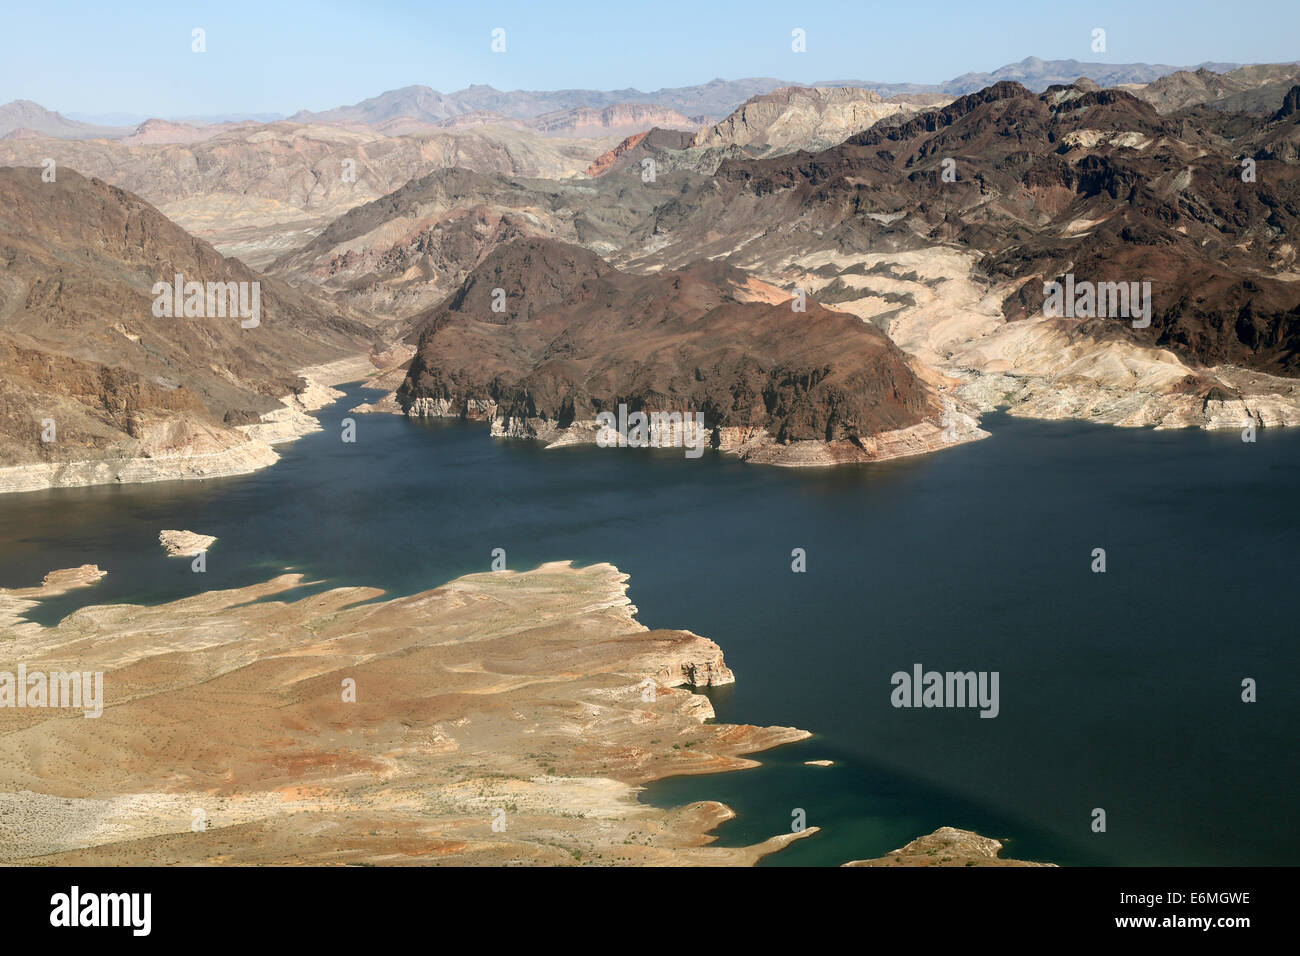 Lake Mead reservoir with drought visible on the Colorado River in Nevada and Arizona in the USA Stock Photo